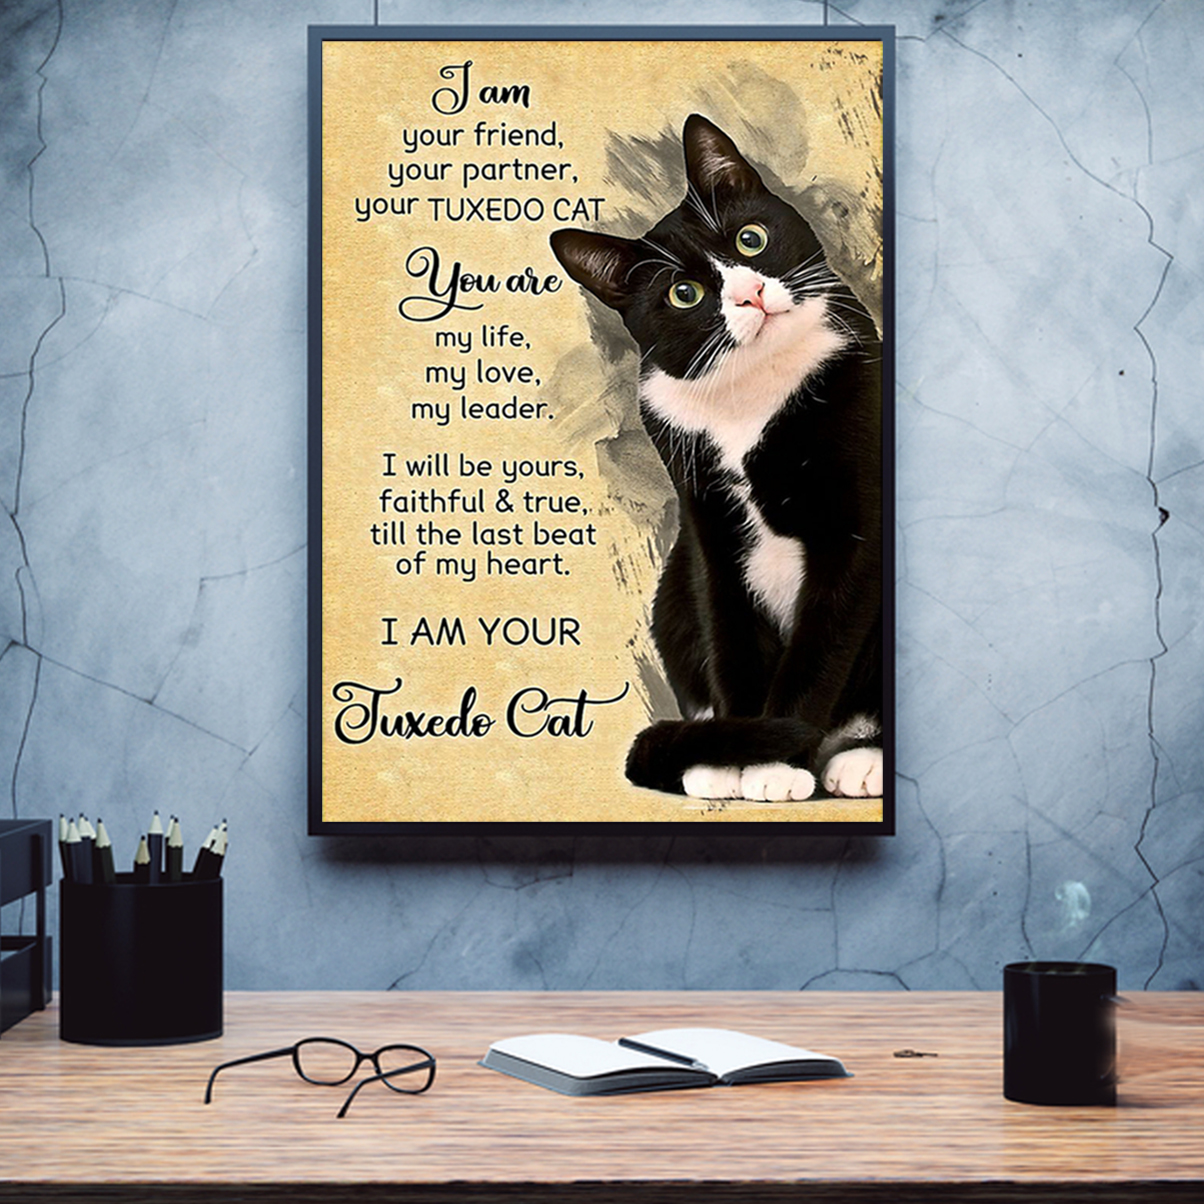 I am your friend your partner your tuxedo cat poster A1